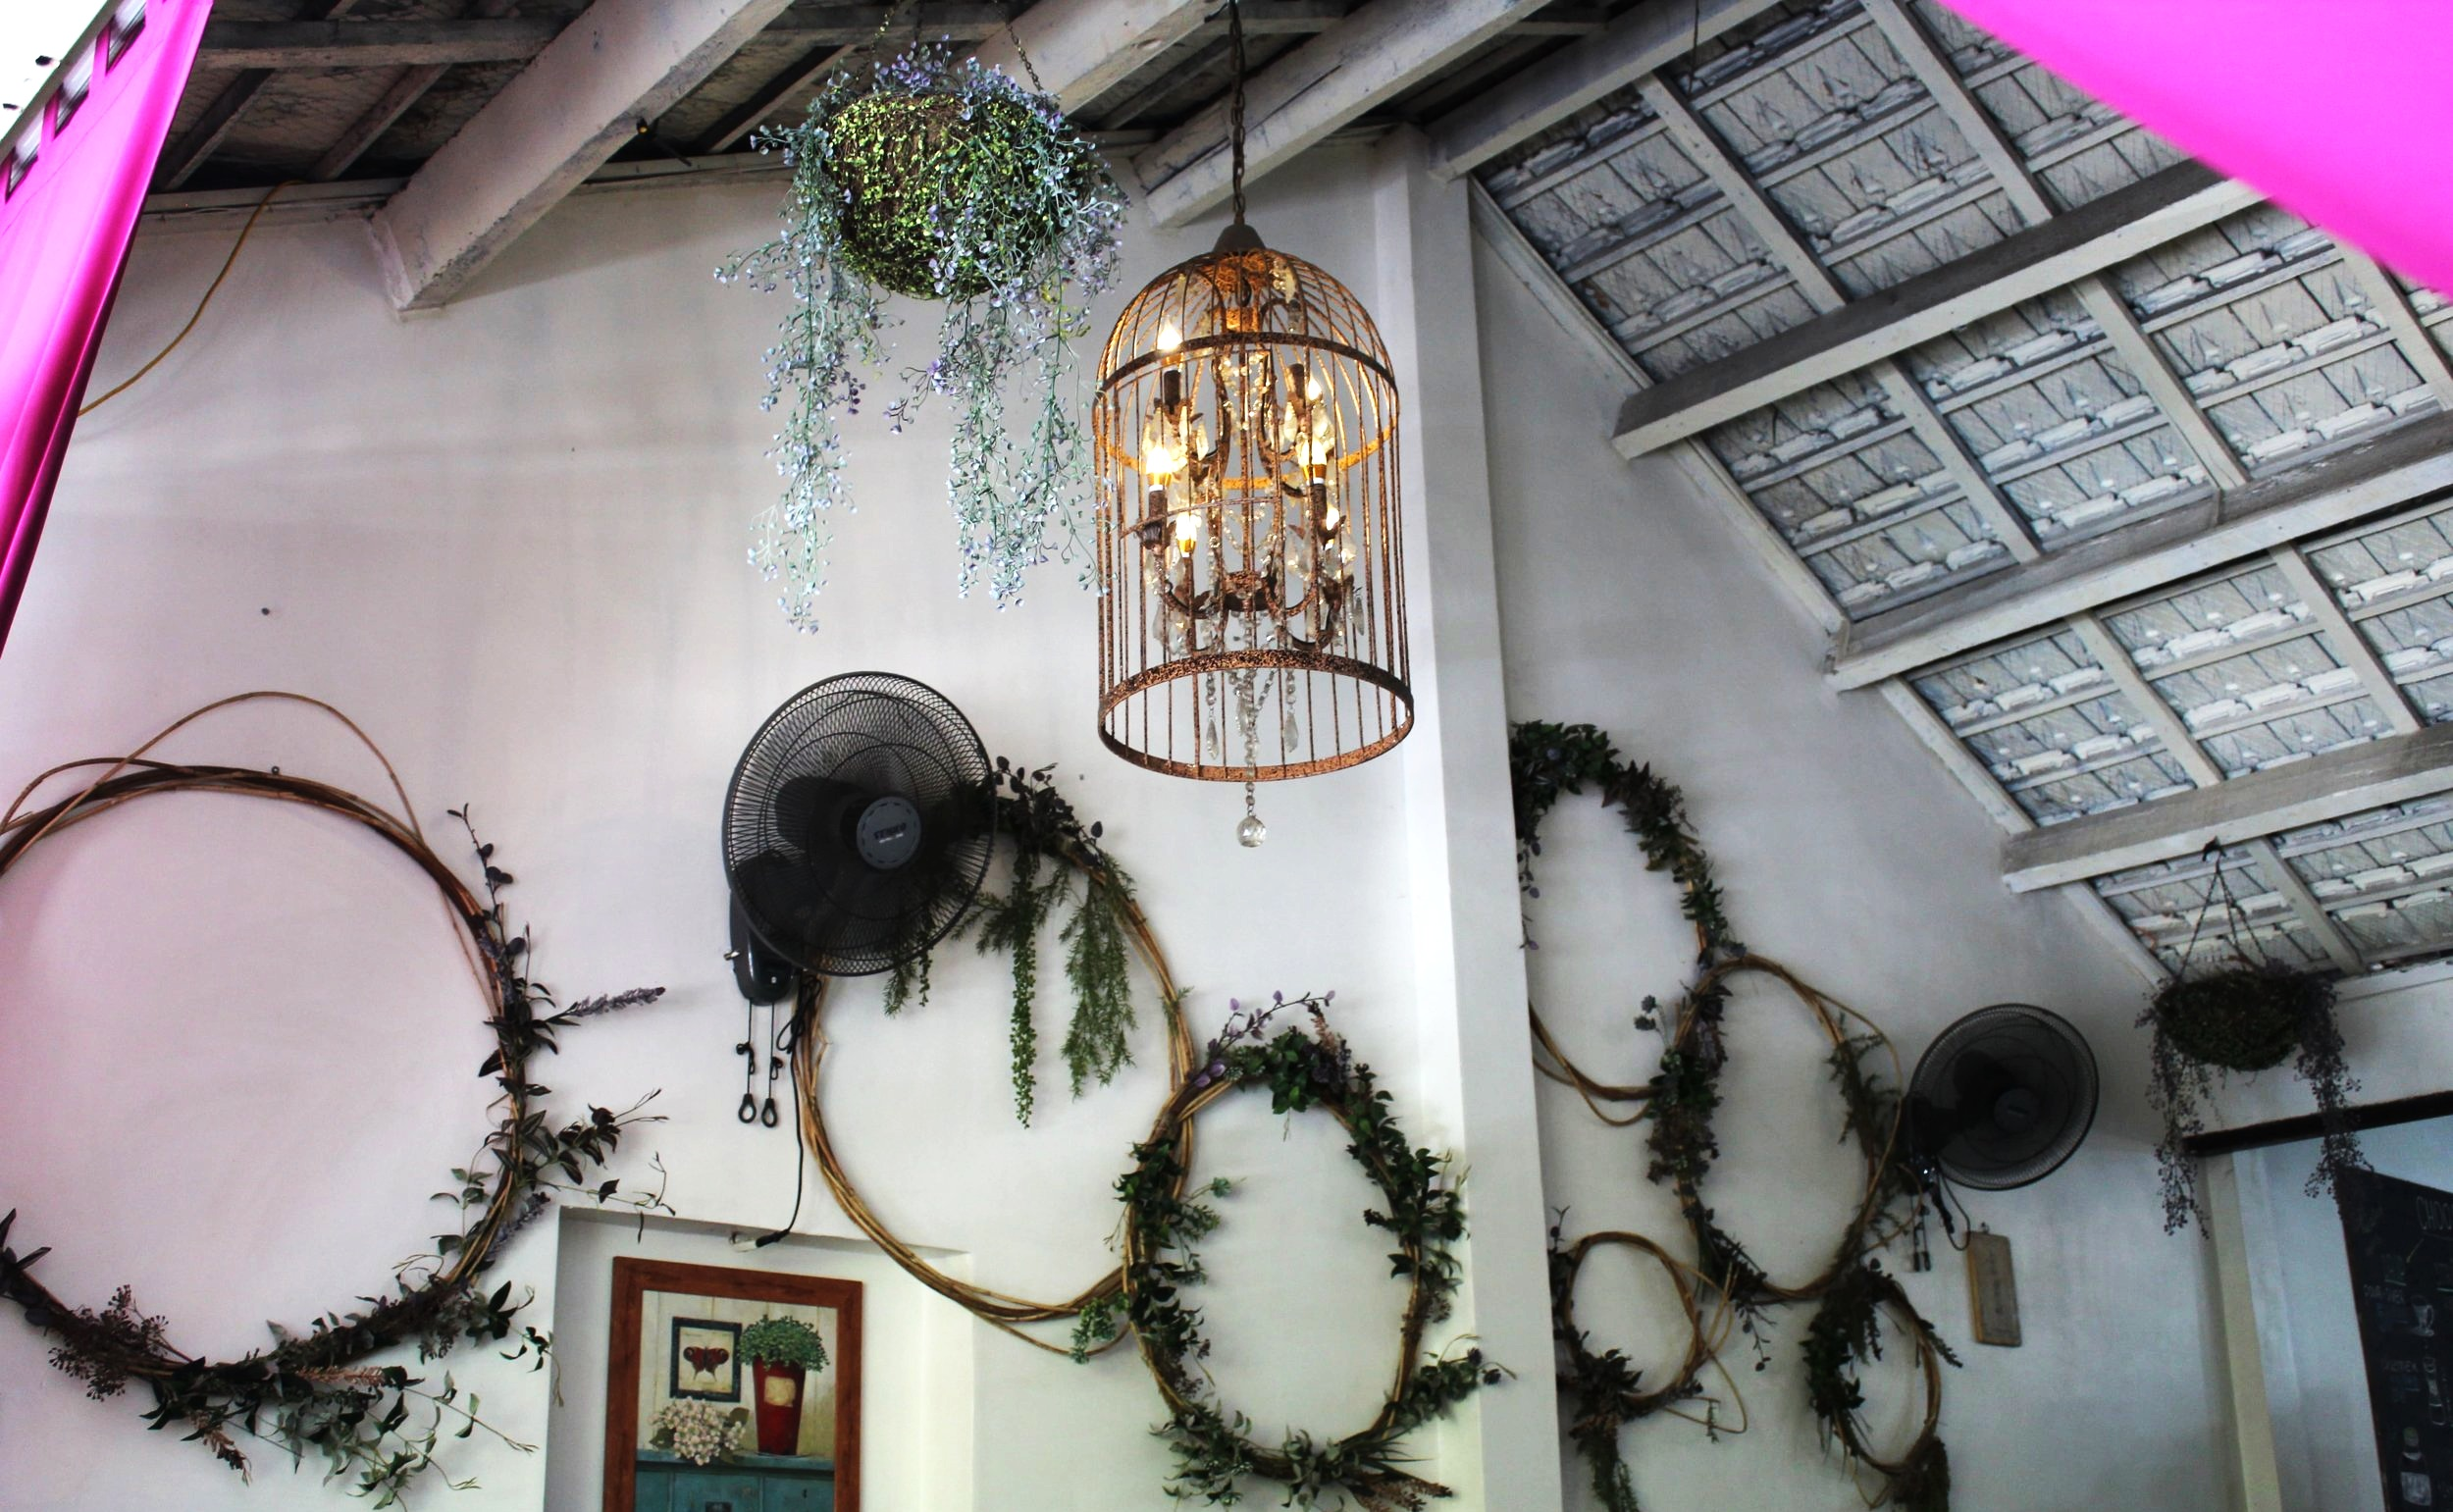 Quirky gold-painted birdcage light fixtures hang from the ceilings